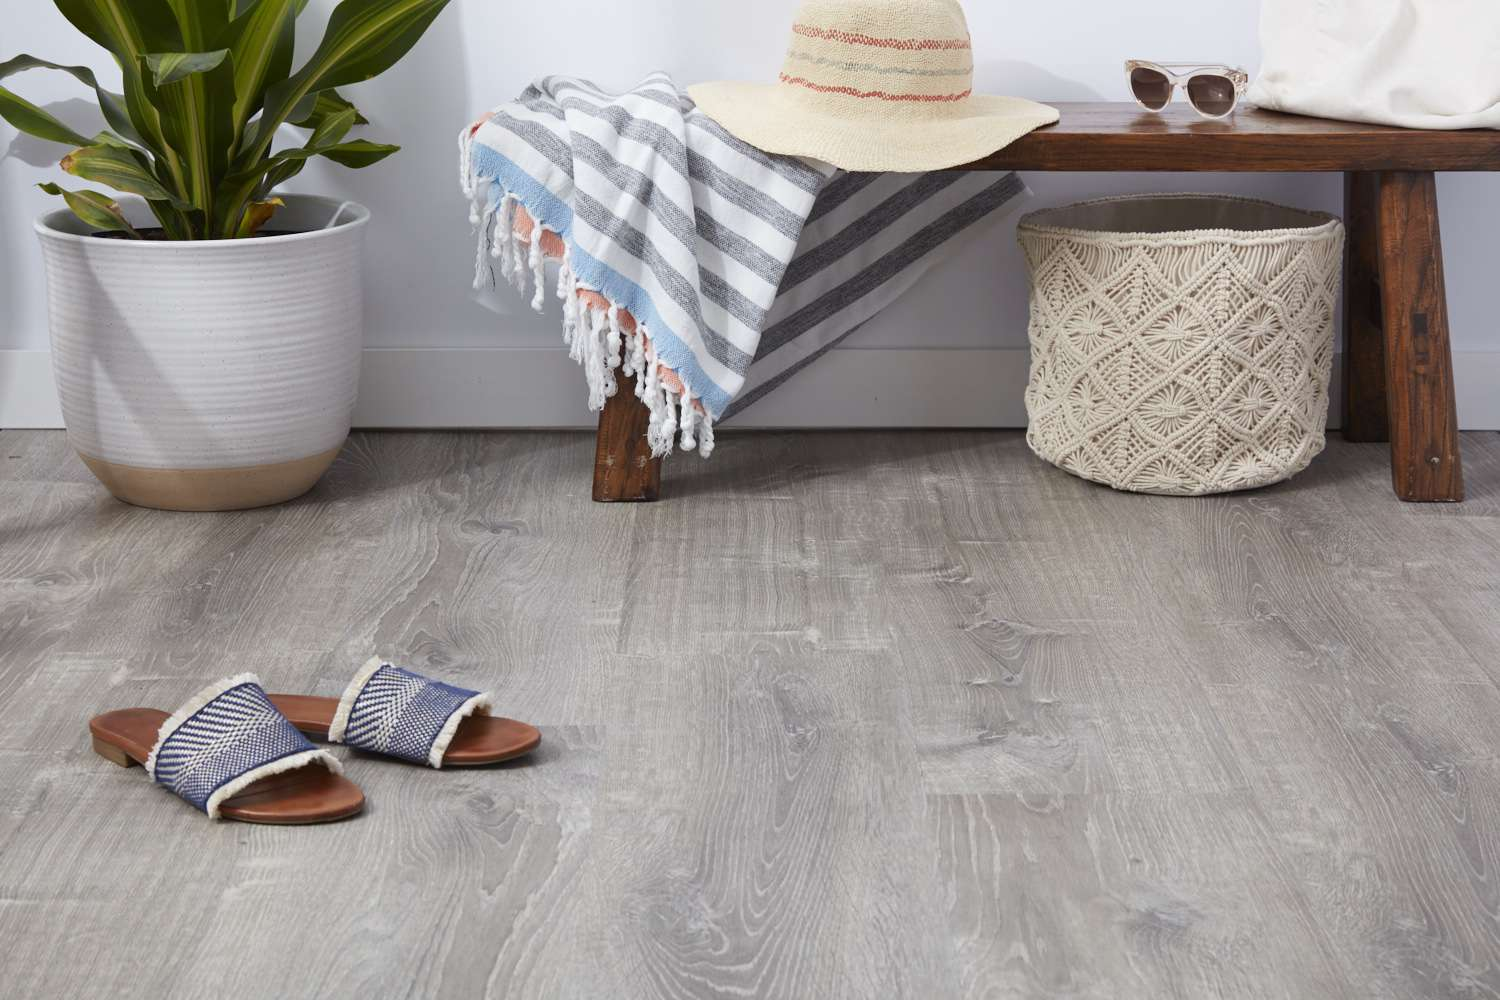 Luxury vinyl plank flooring with sandals and wooden bench with beach items next to houseplant